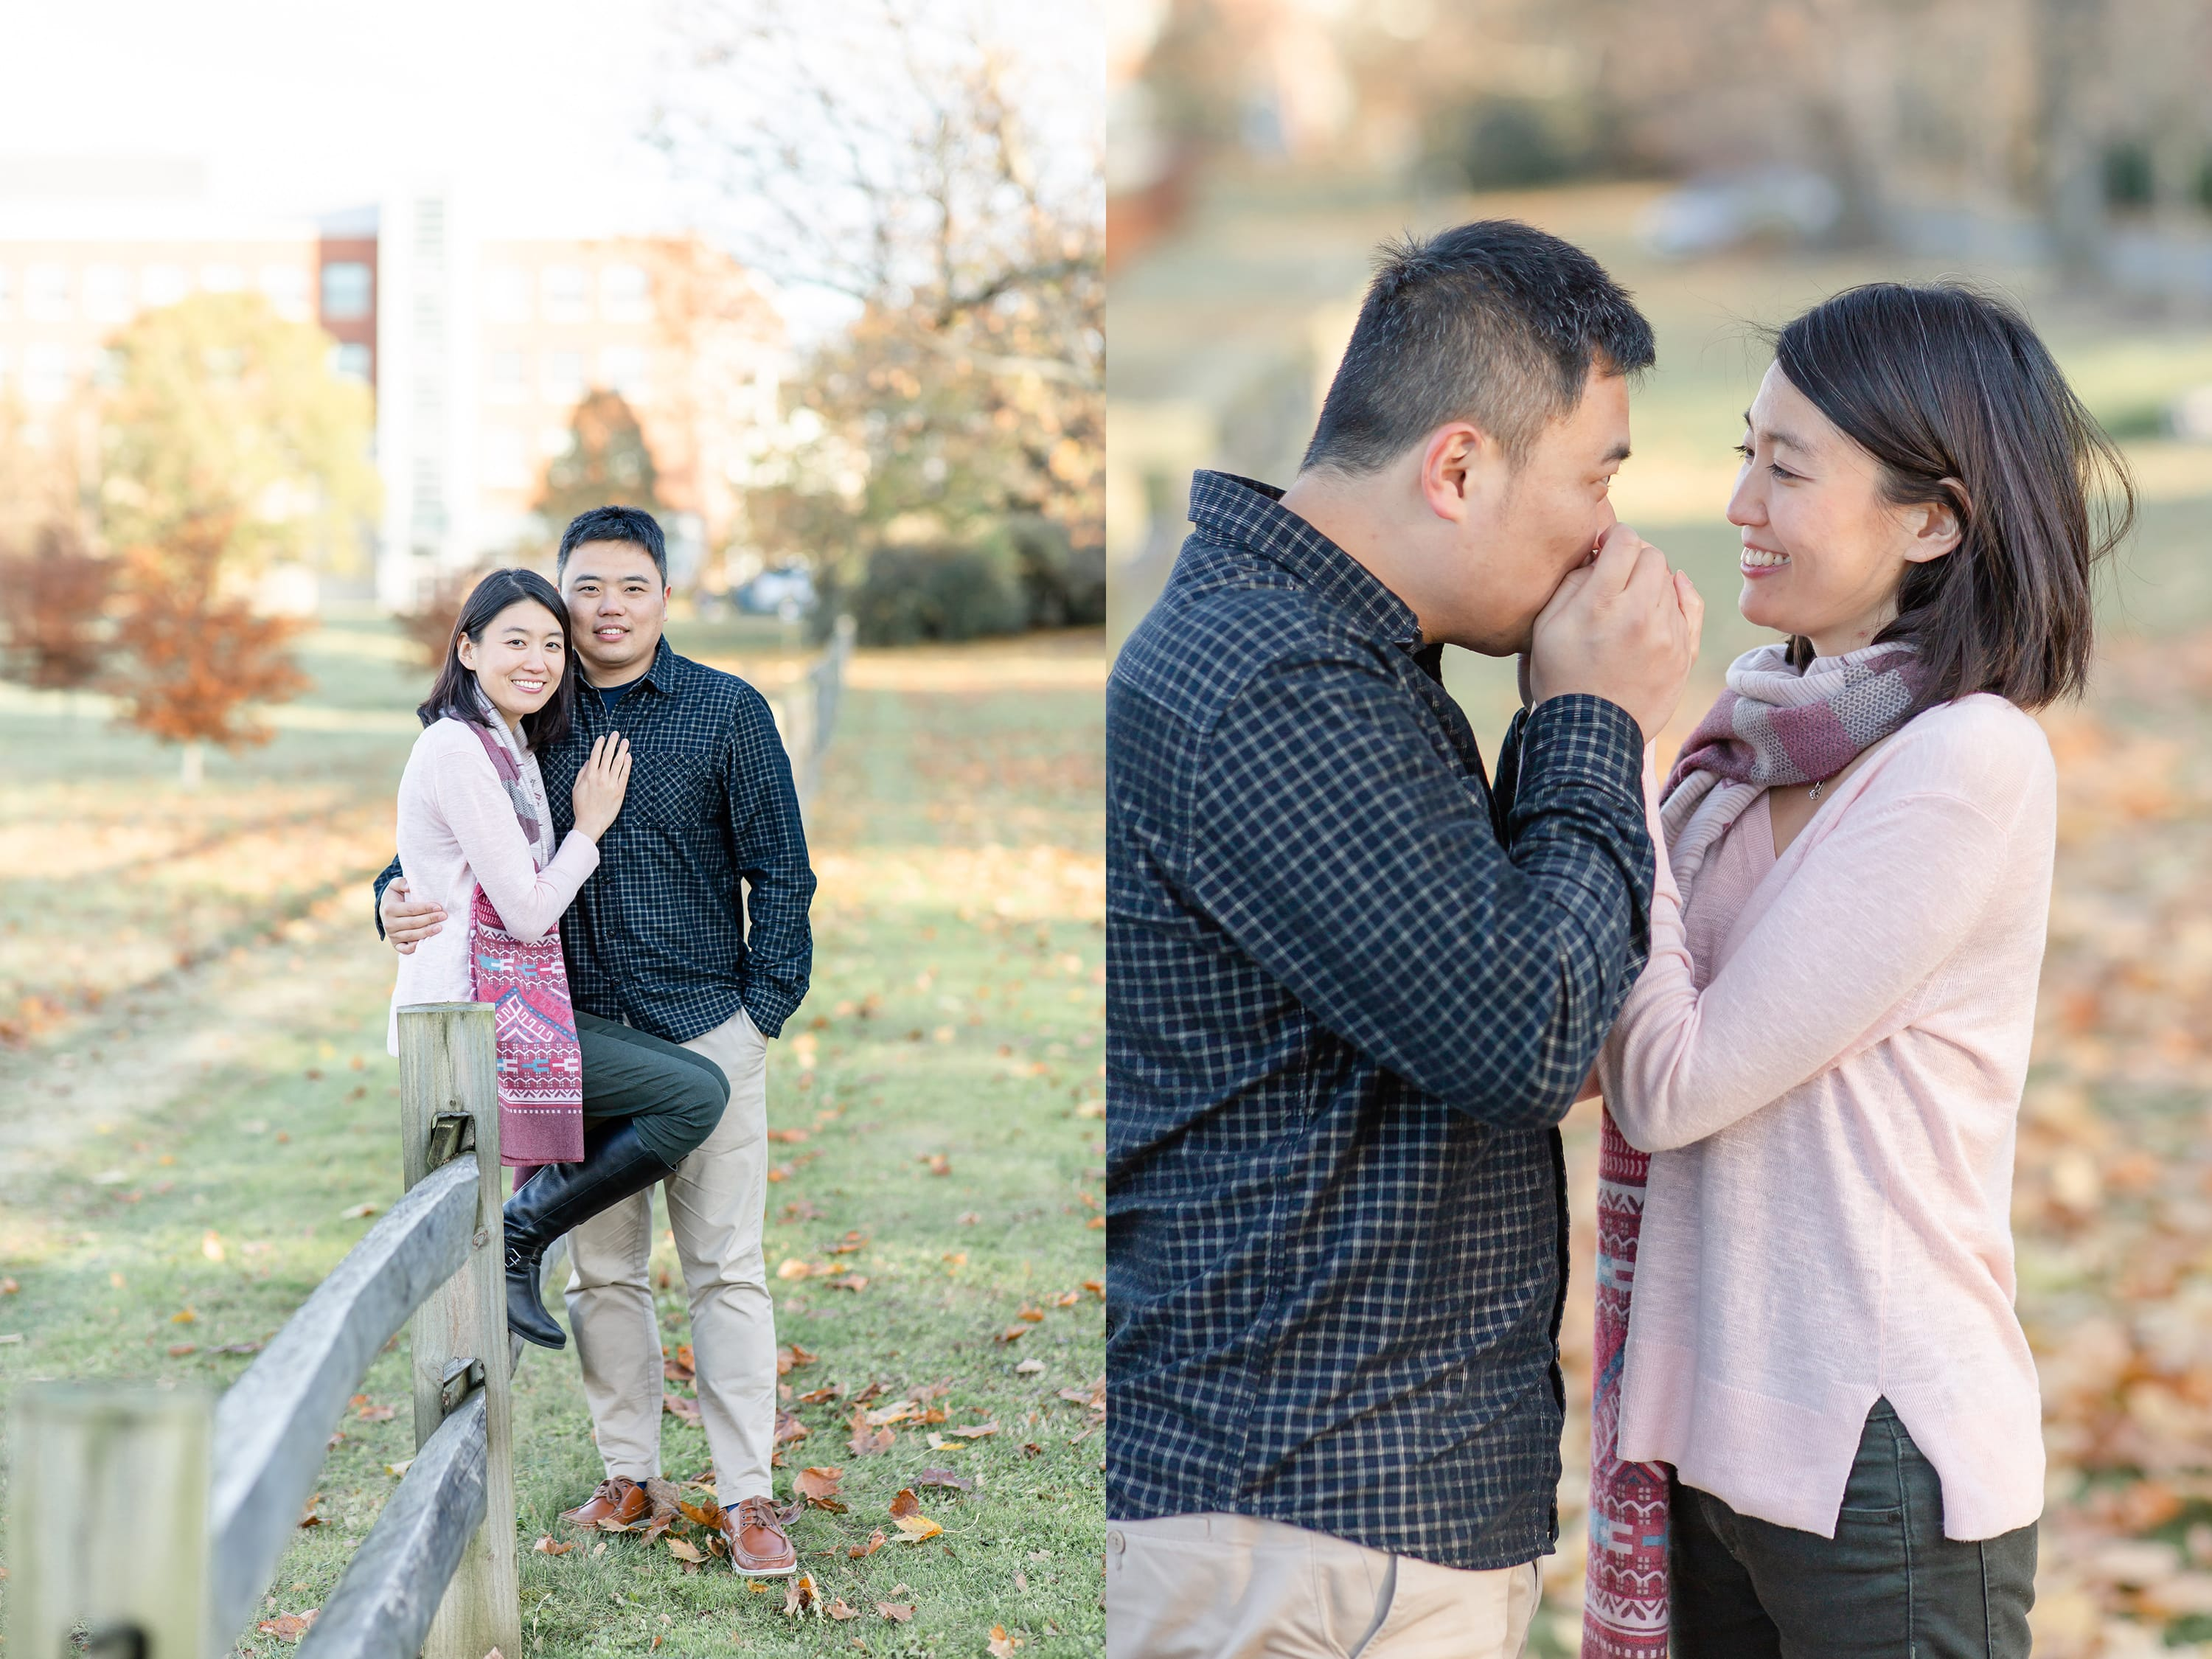 Penn State Arboretum Engagement photo during fall